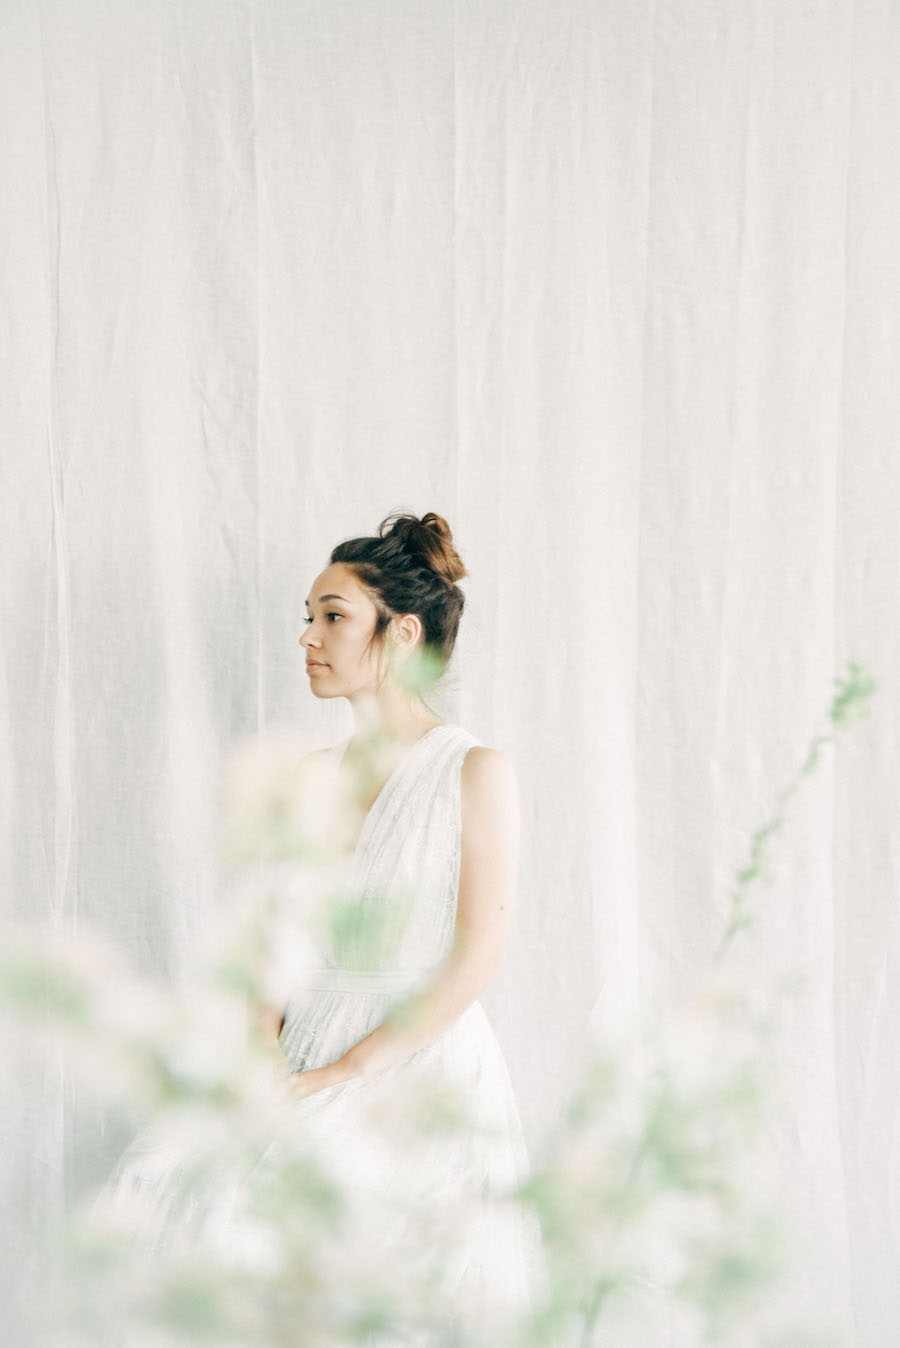 A bride waits. See more from Soil & Stem's Spring Floral Design Workshop now on Cottage Hill